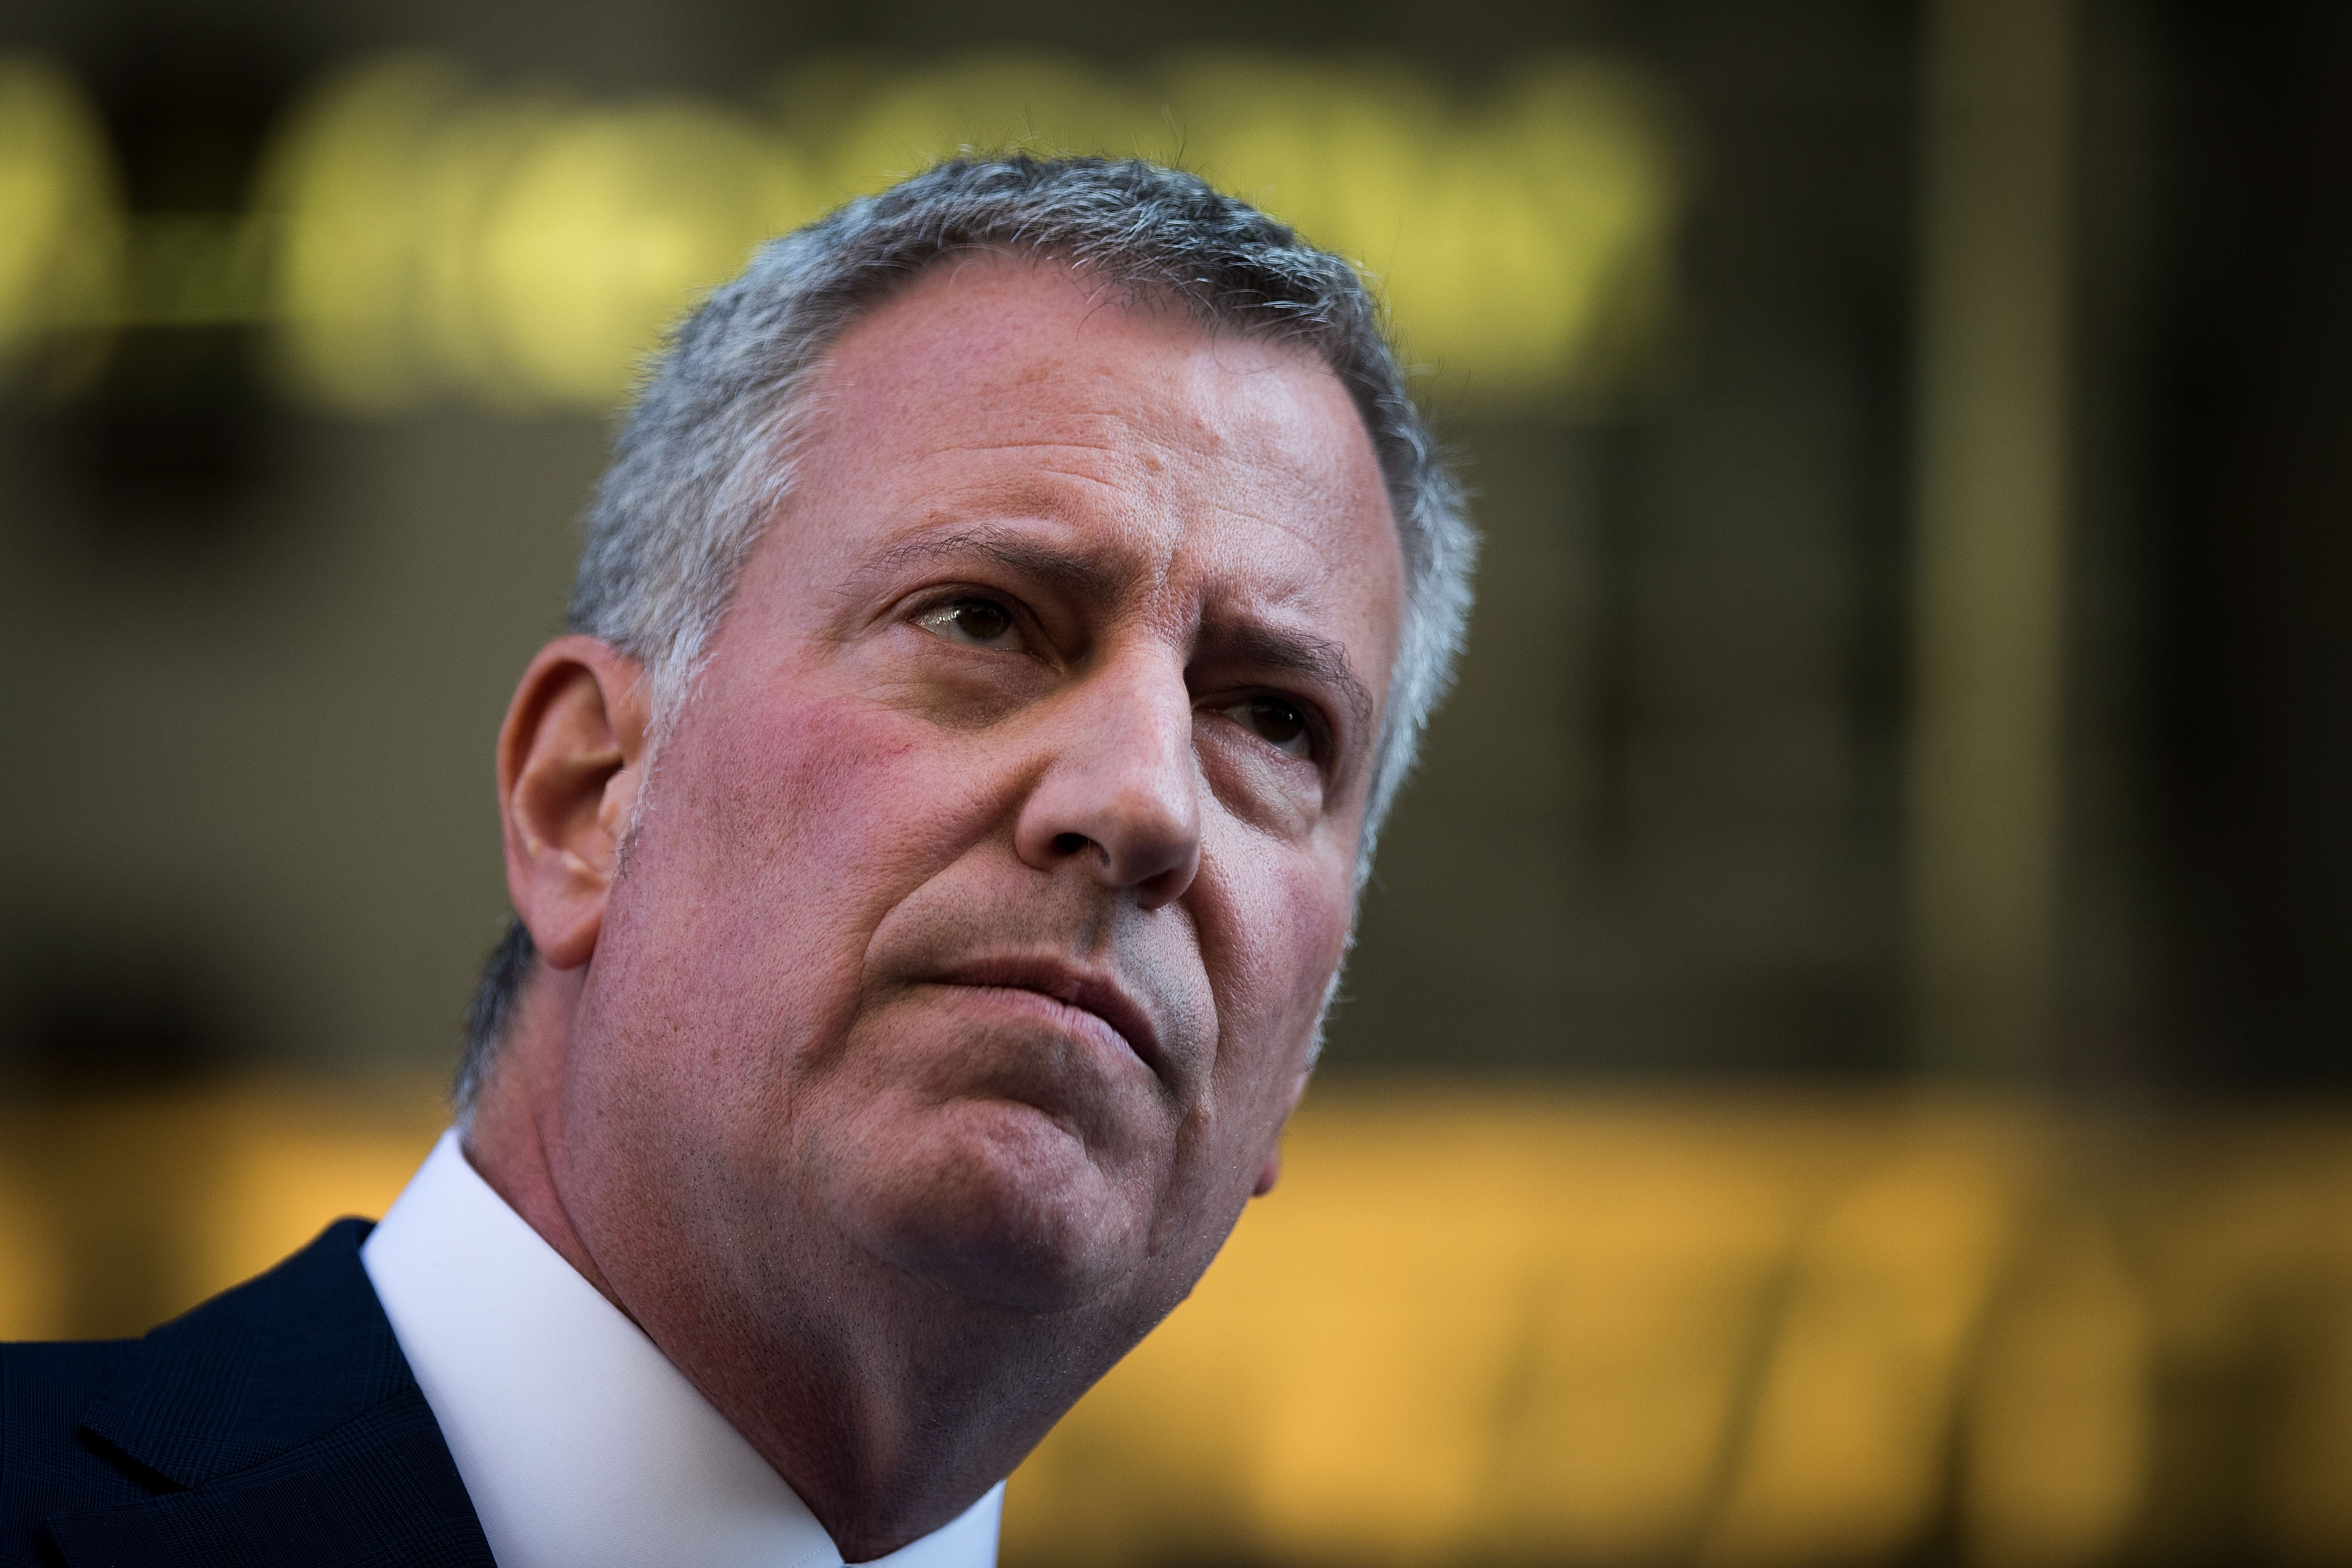 De Blasio says NYC only has enough medical supplies to last through the week